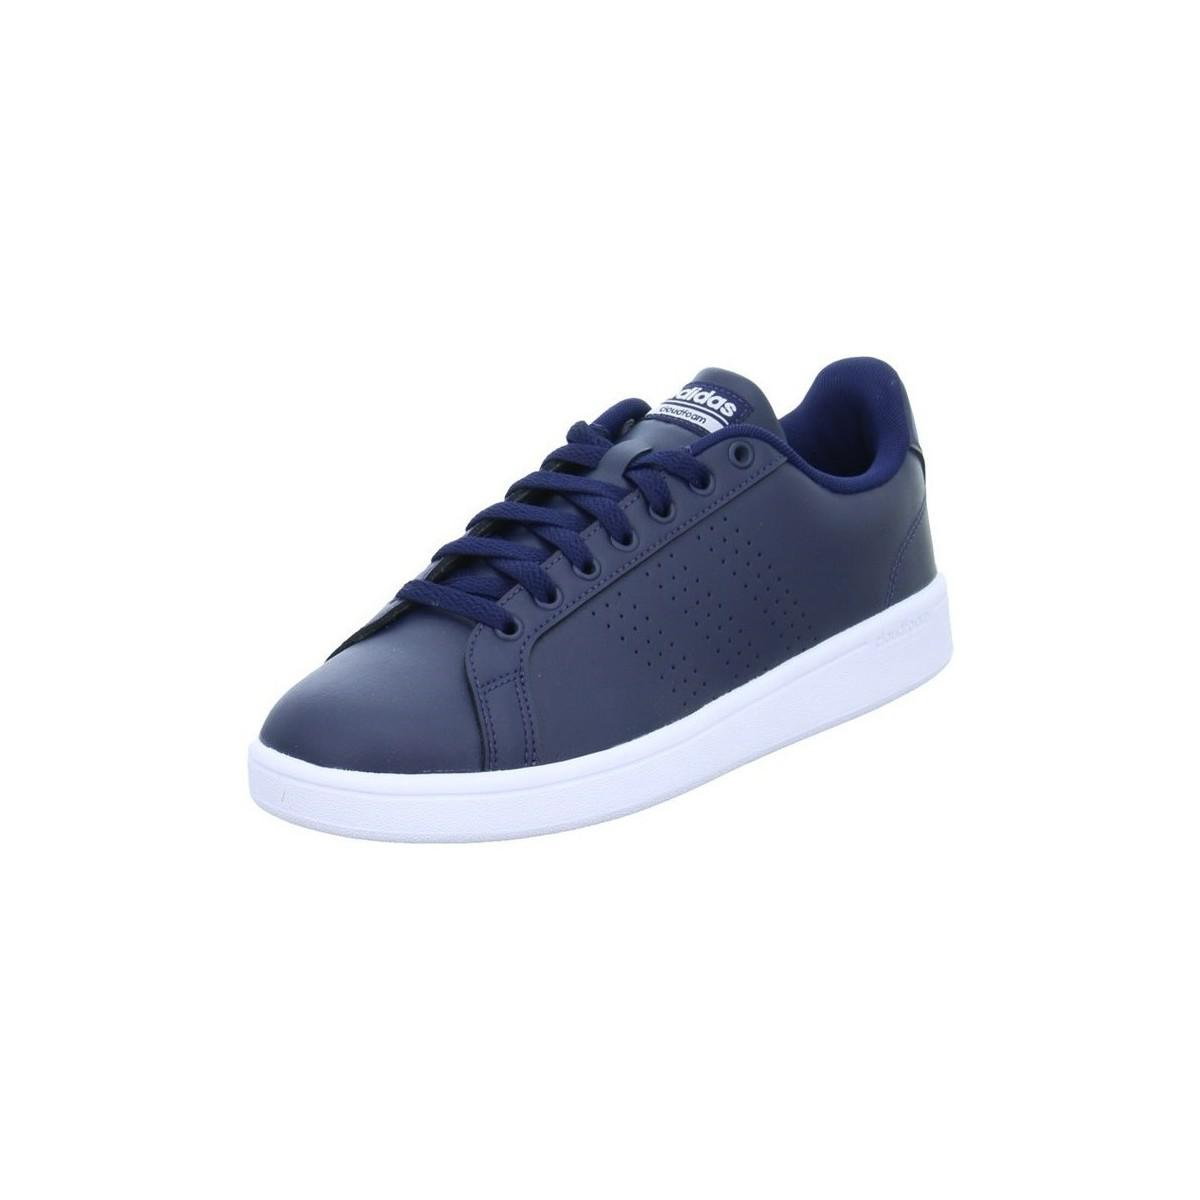 finest selection c738c 1acb6 adidas Cf Advantage Cl Women s Shoes (trainers) In Blue in Blue - Lyst